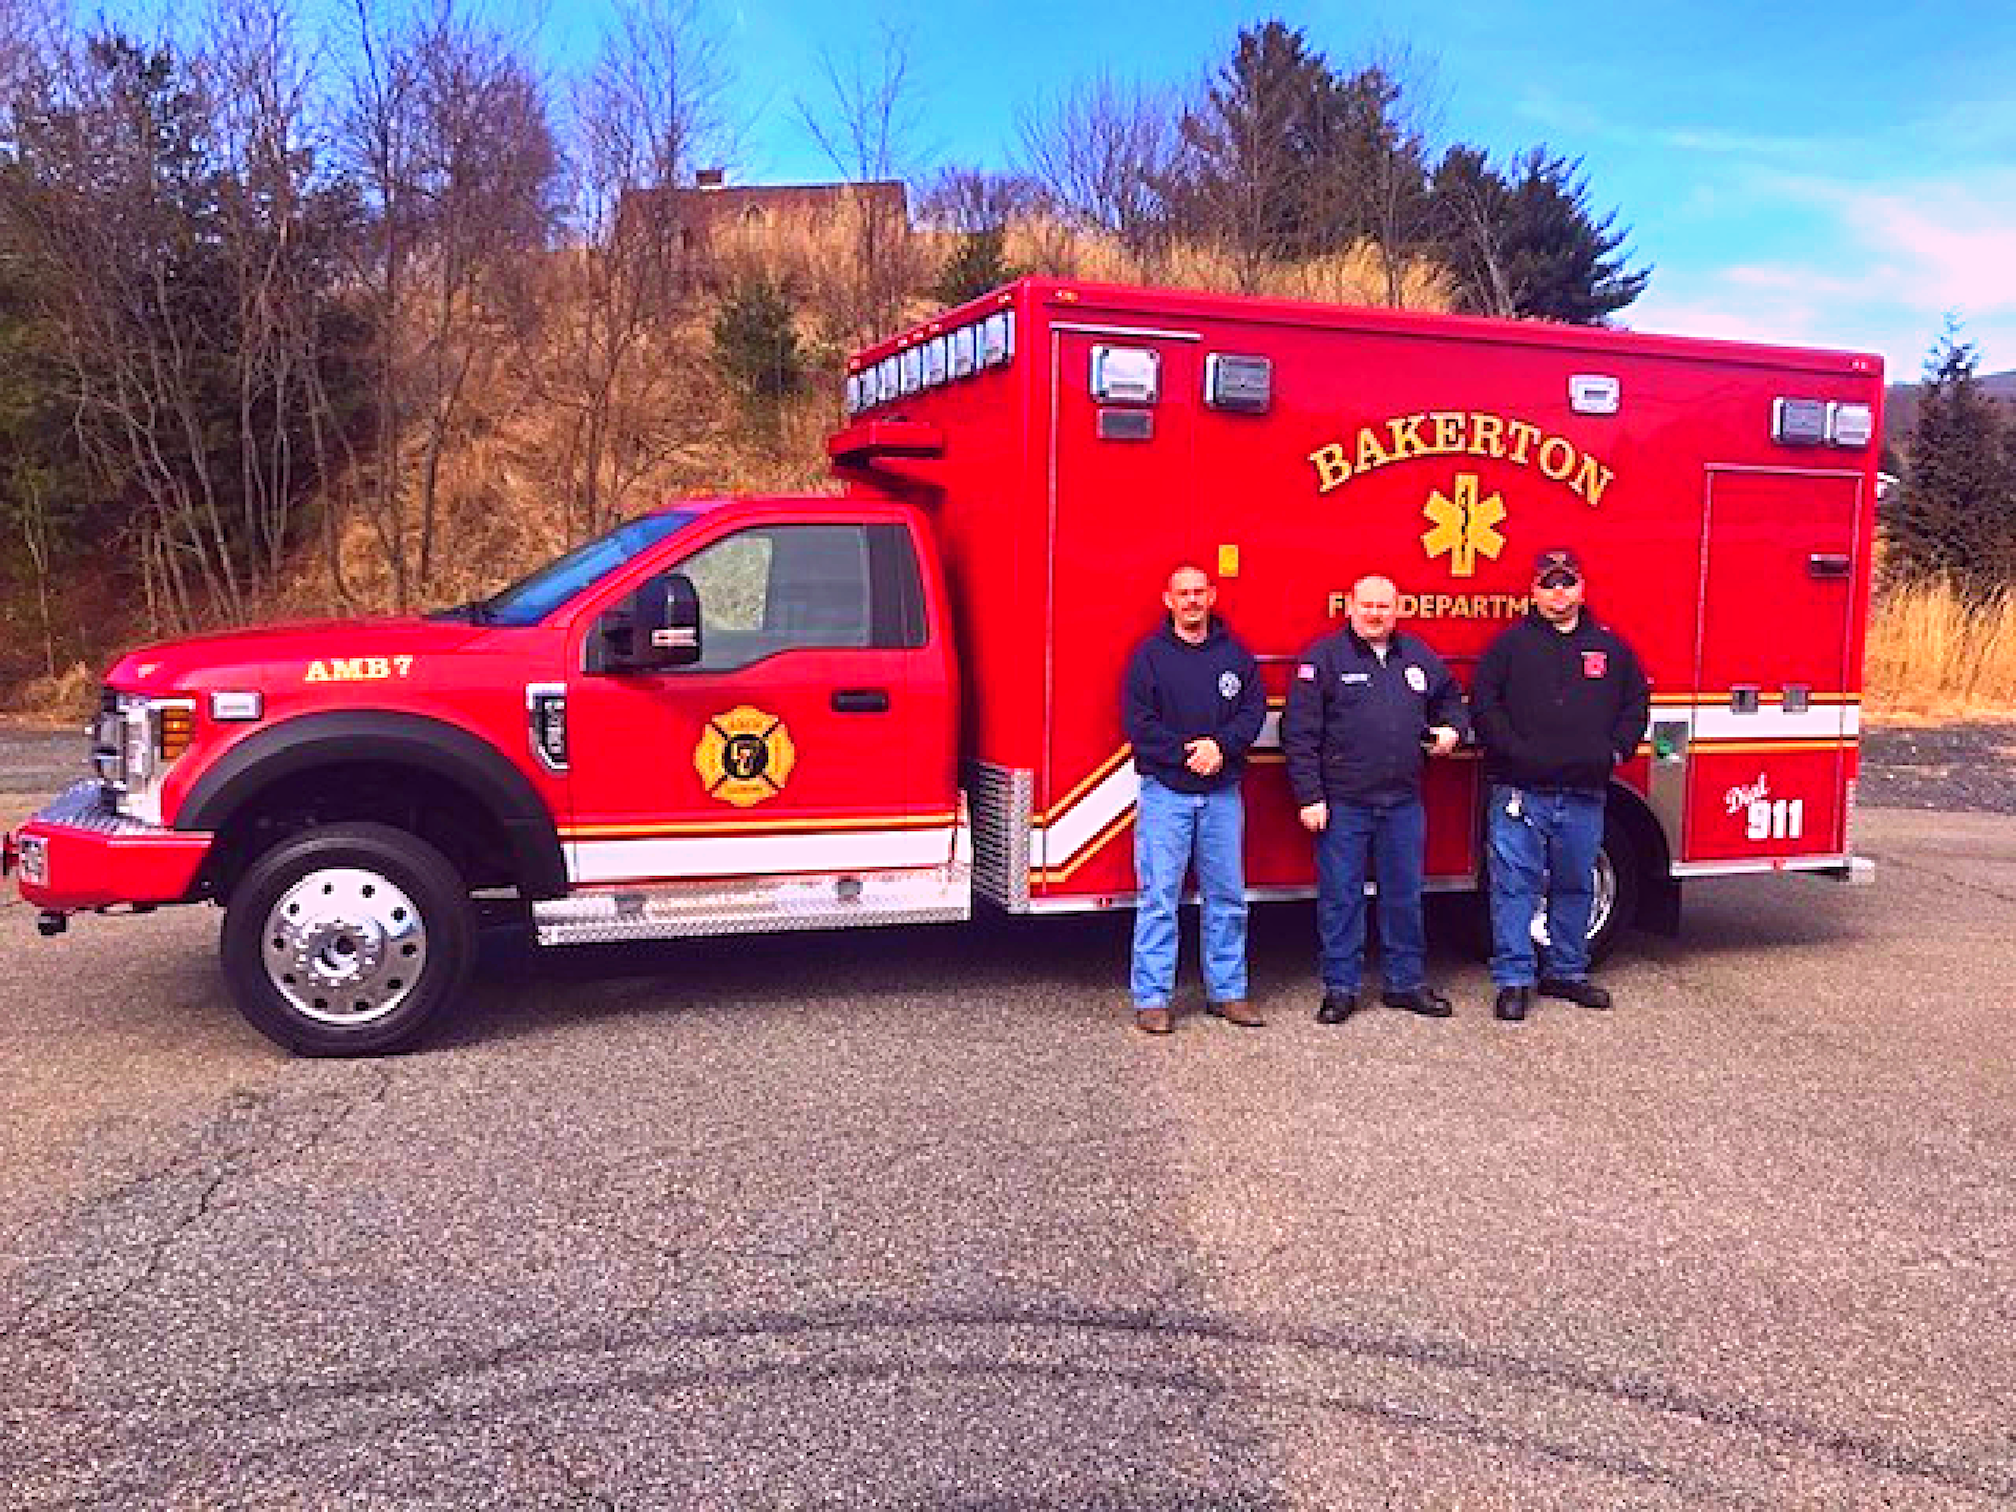 First Priority Emergency Vehicles Ambulance Remount Bakerton Fire Department